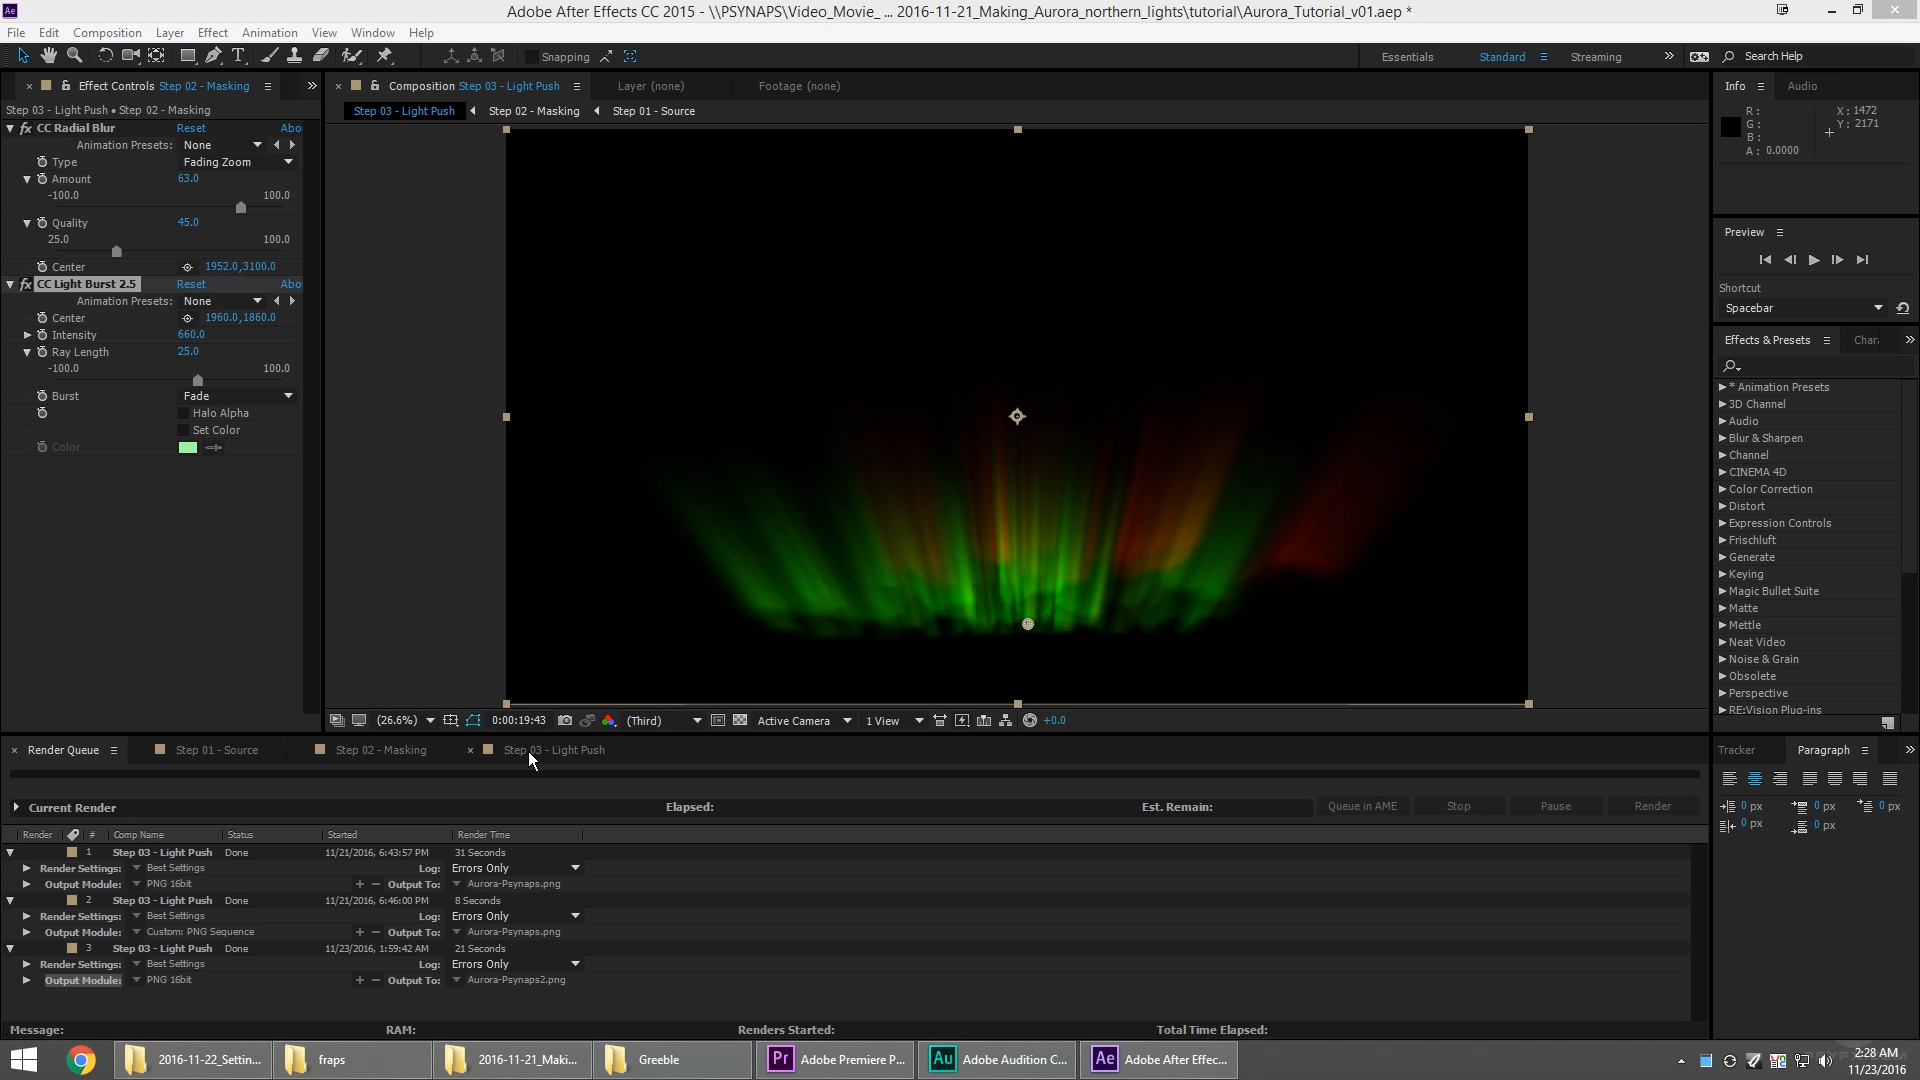 Create an Aurora (Northern Lights) in After Effects (Download Project)